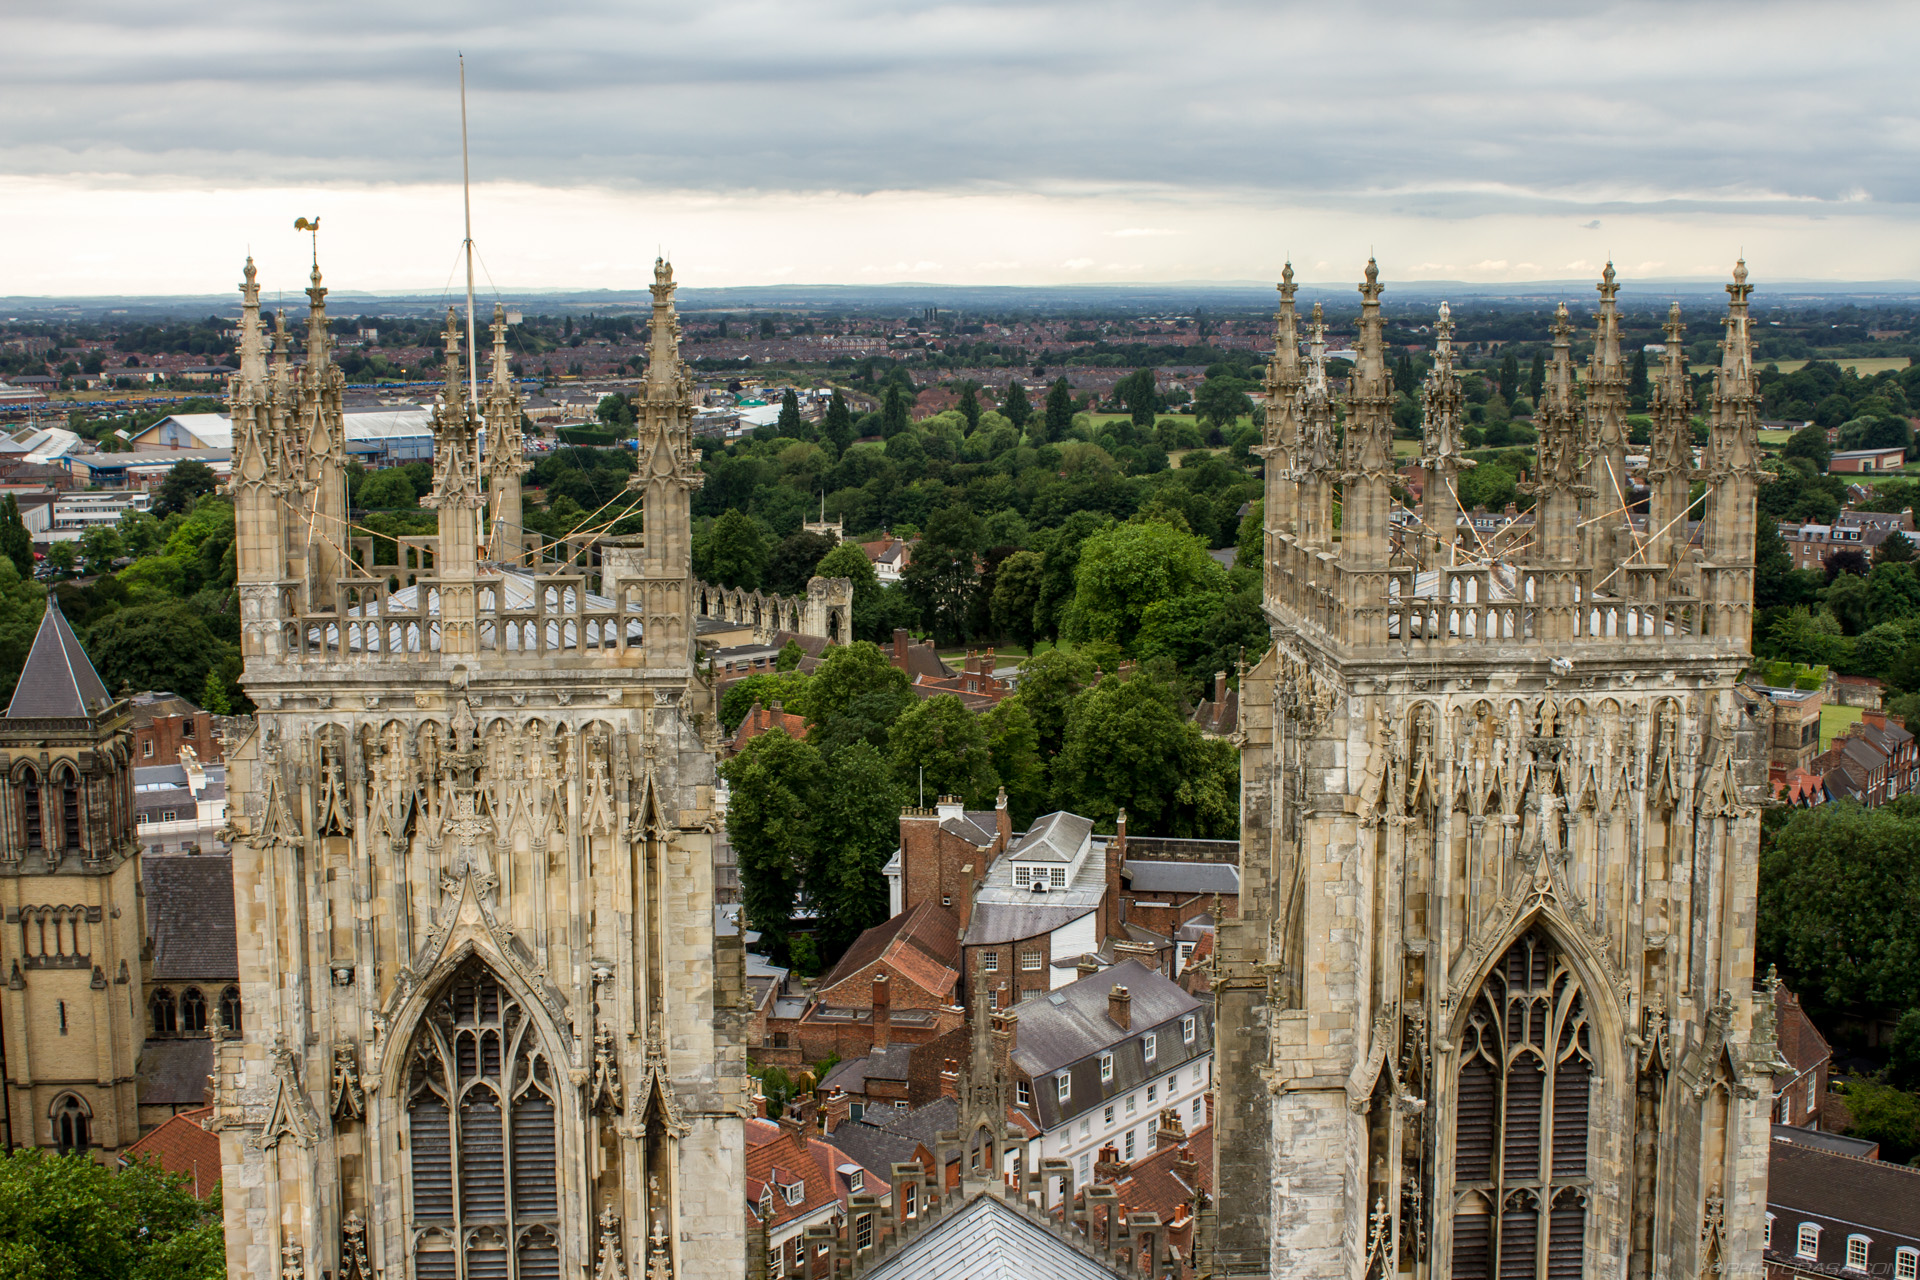 https://photorasa.com/yorkminster-cathedral/york-twin-towers/